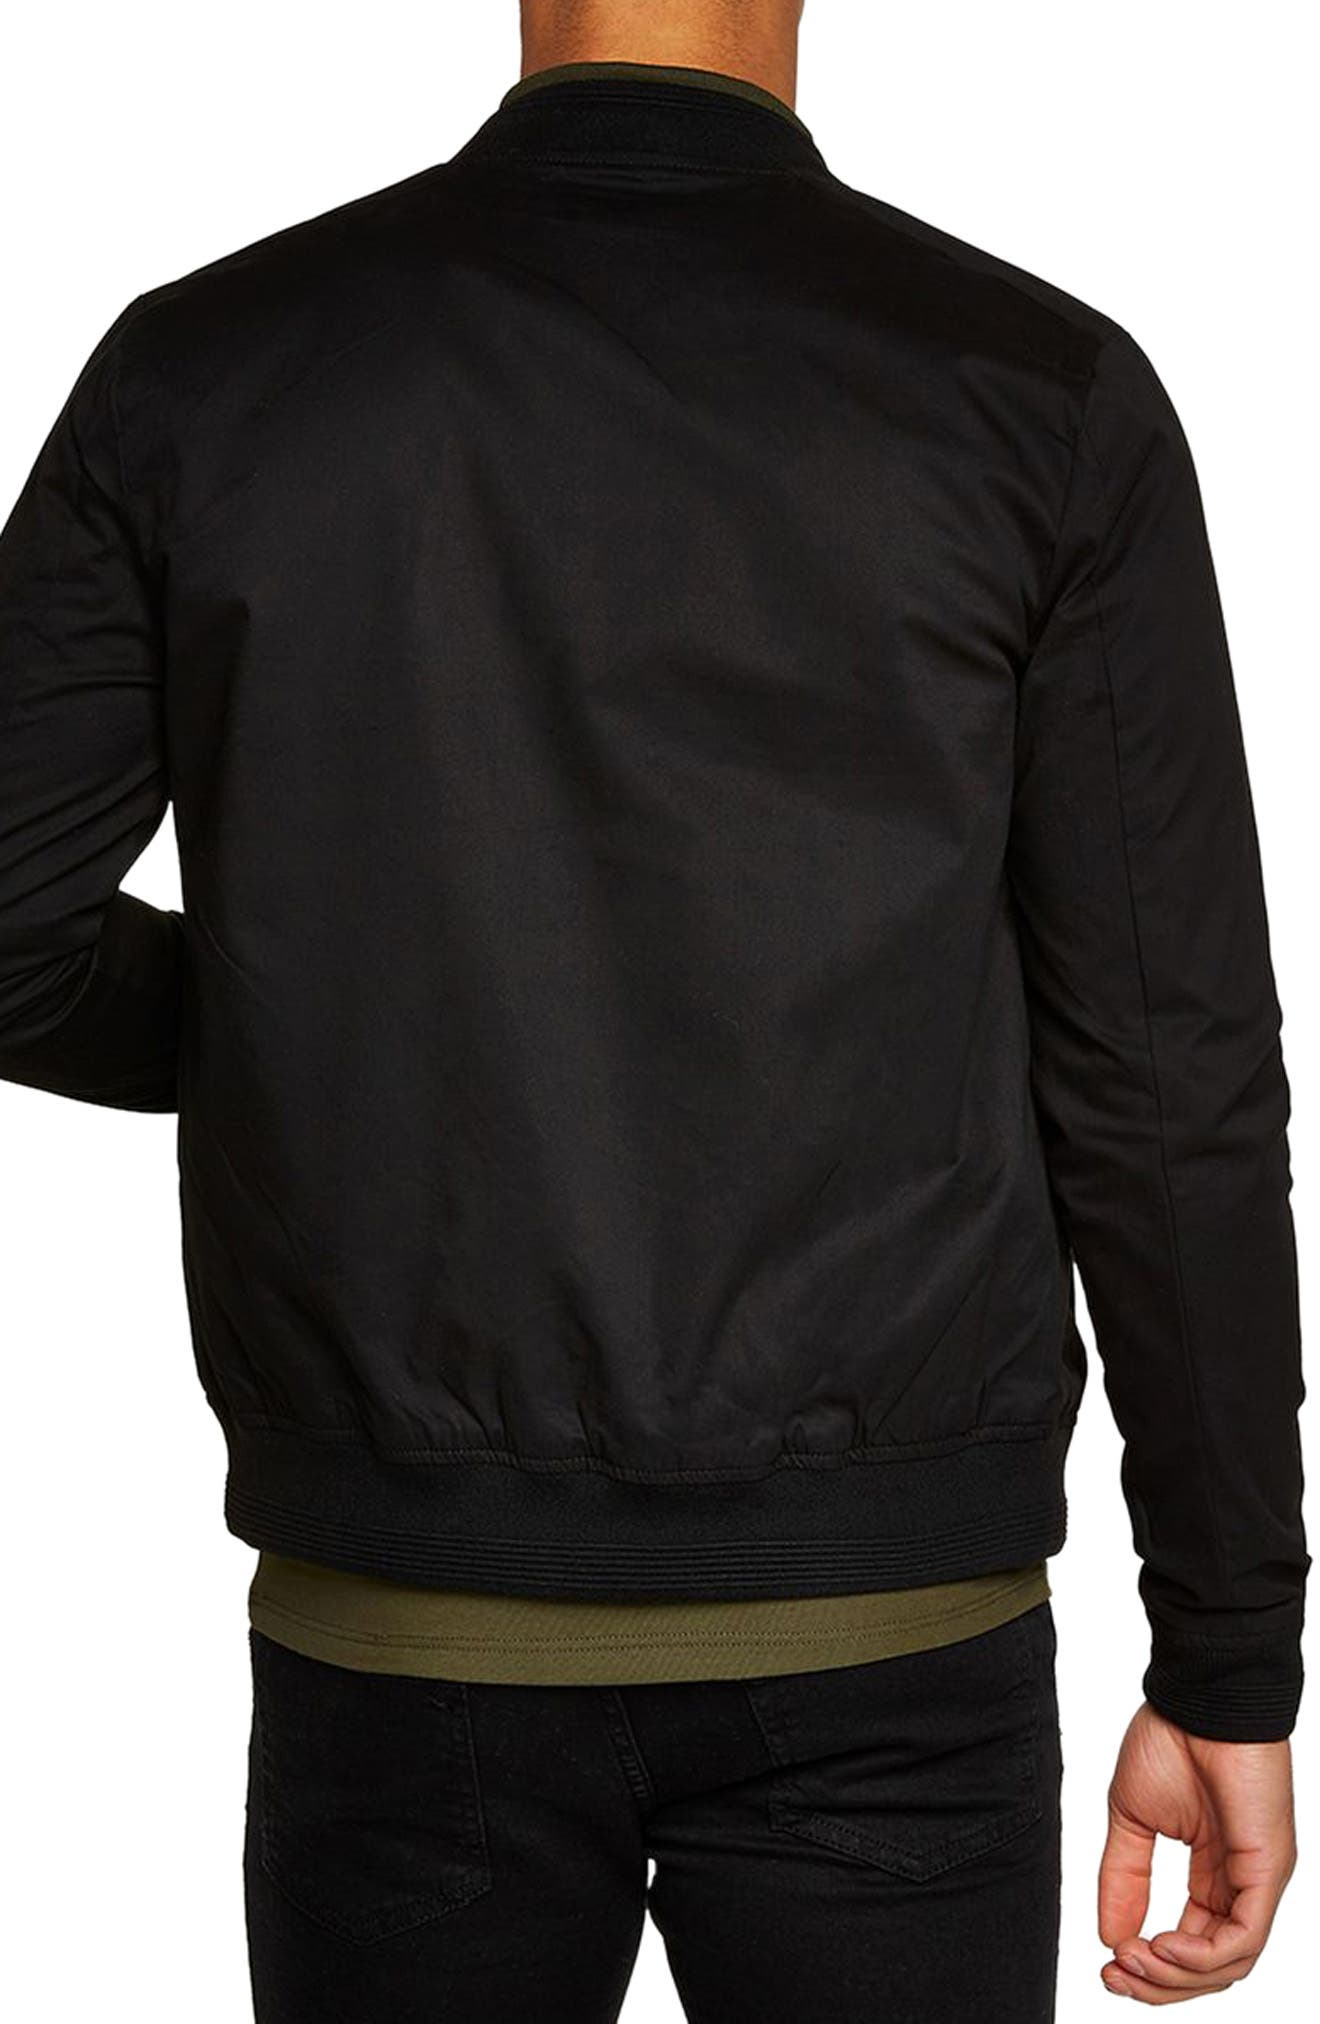 Muscle Fit Bomber Jacket,                             Alternate thumbnail 2, color,                             001